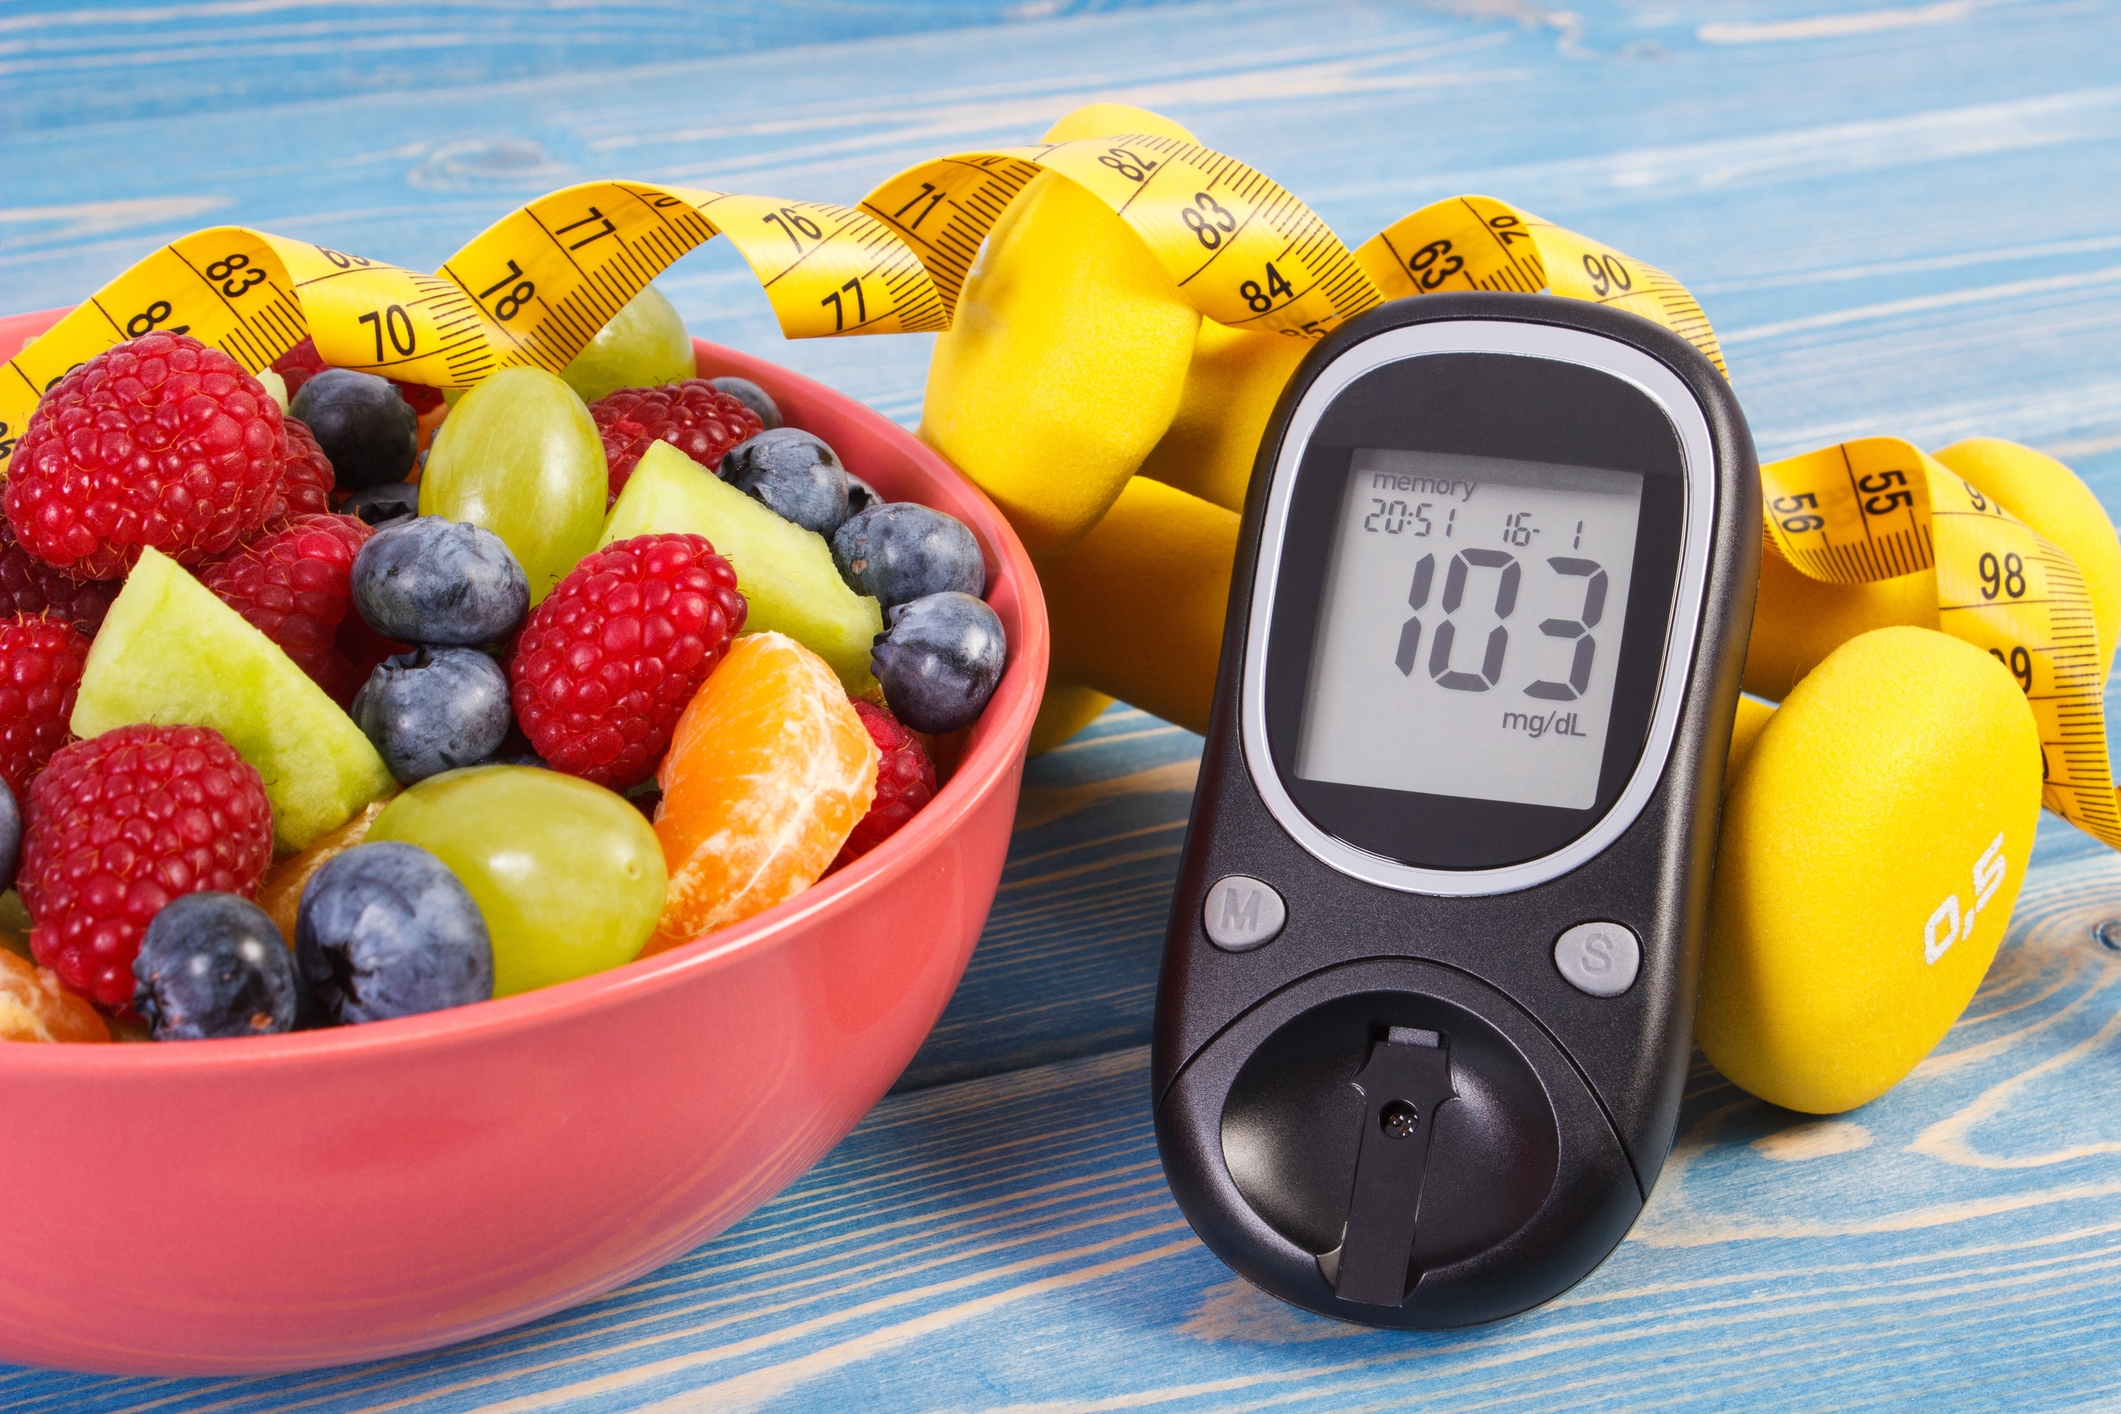 Fruit salad, glucose meter, centimeter and dumbbells, diabetes, healthy lifestyle and nutrition concept